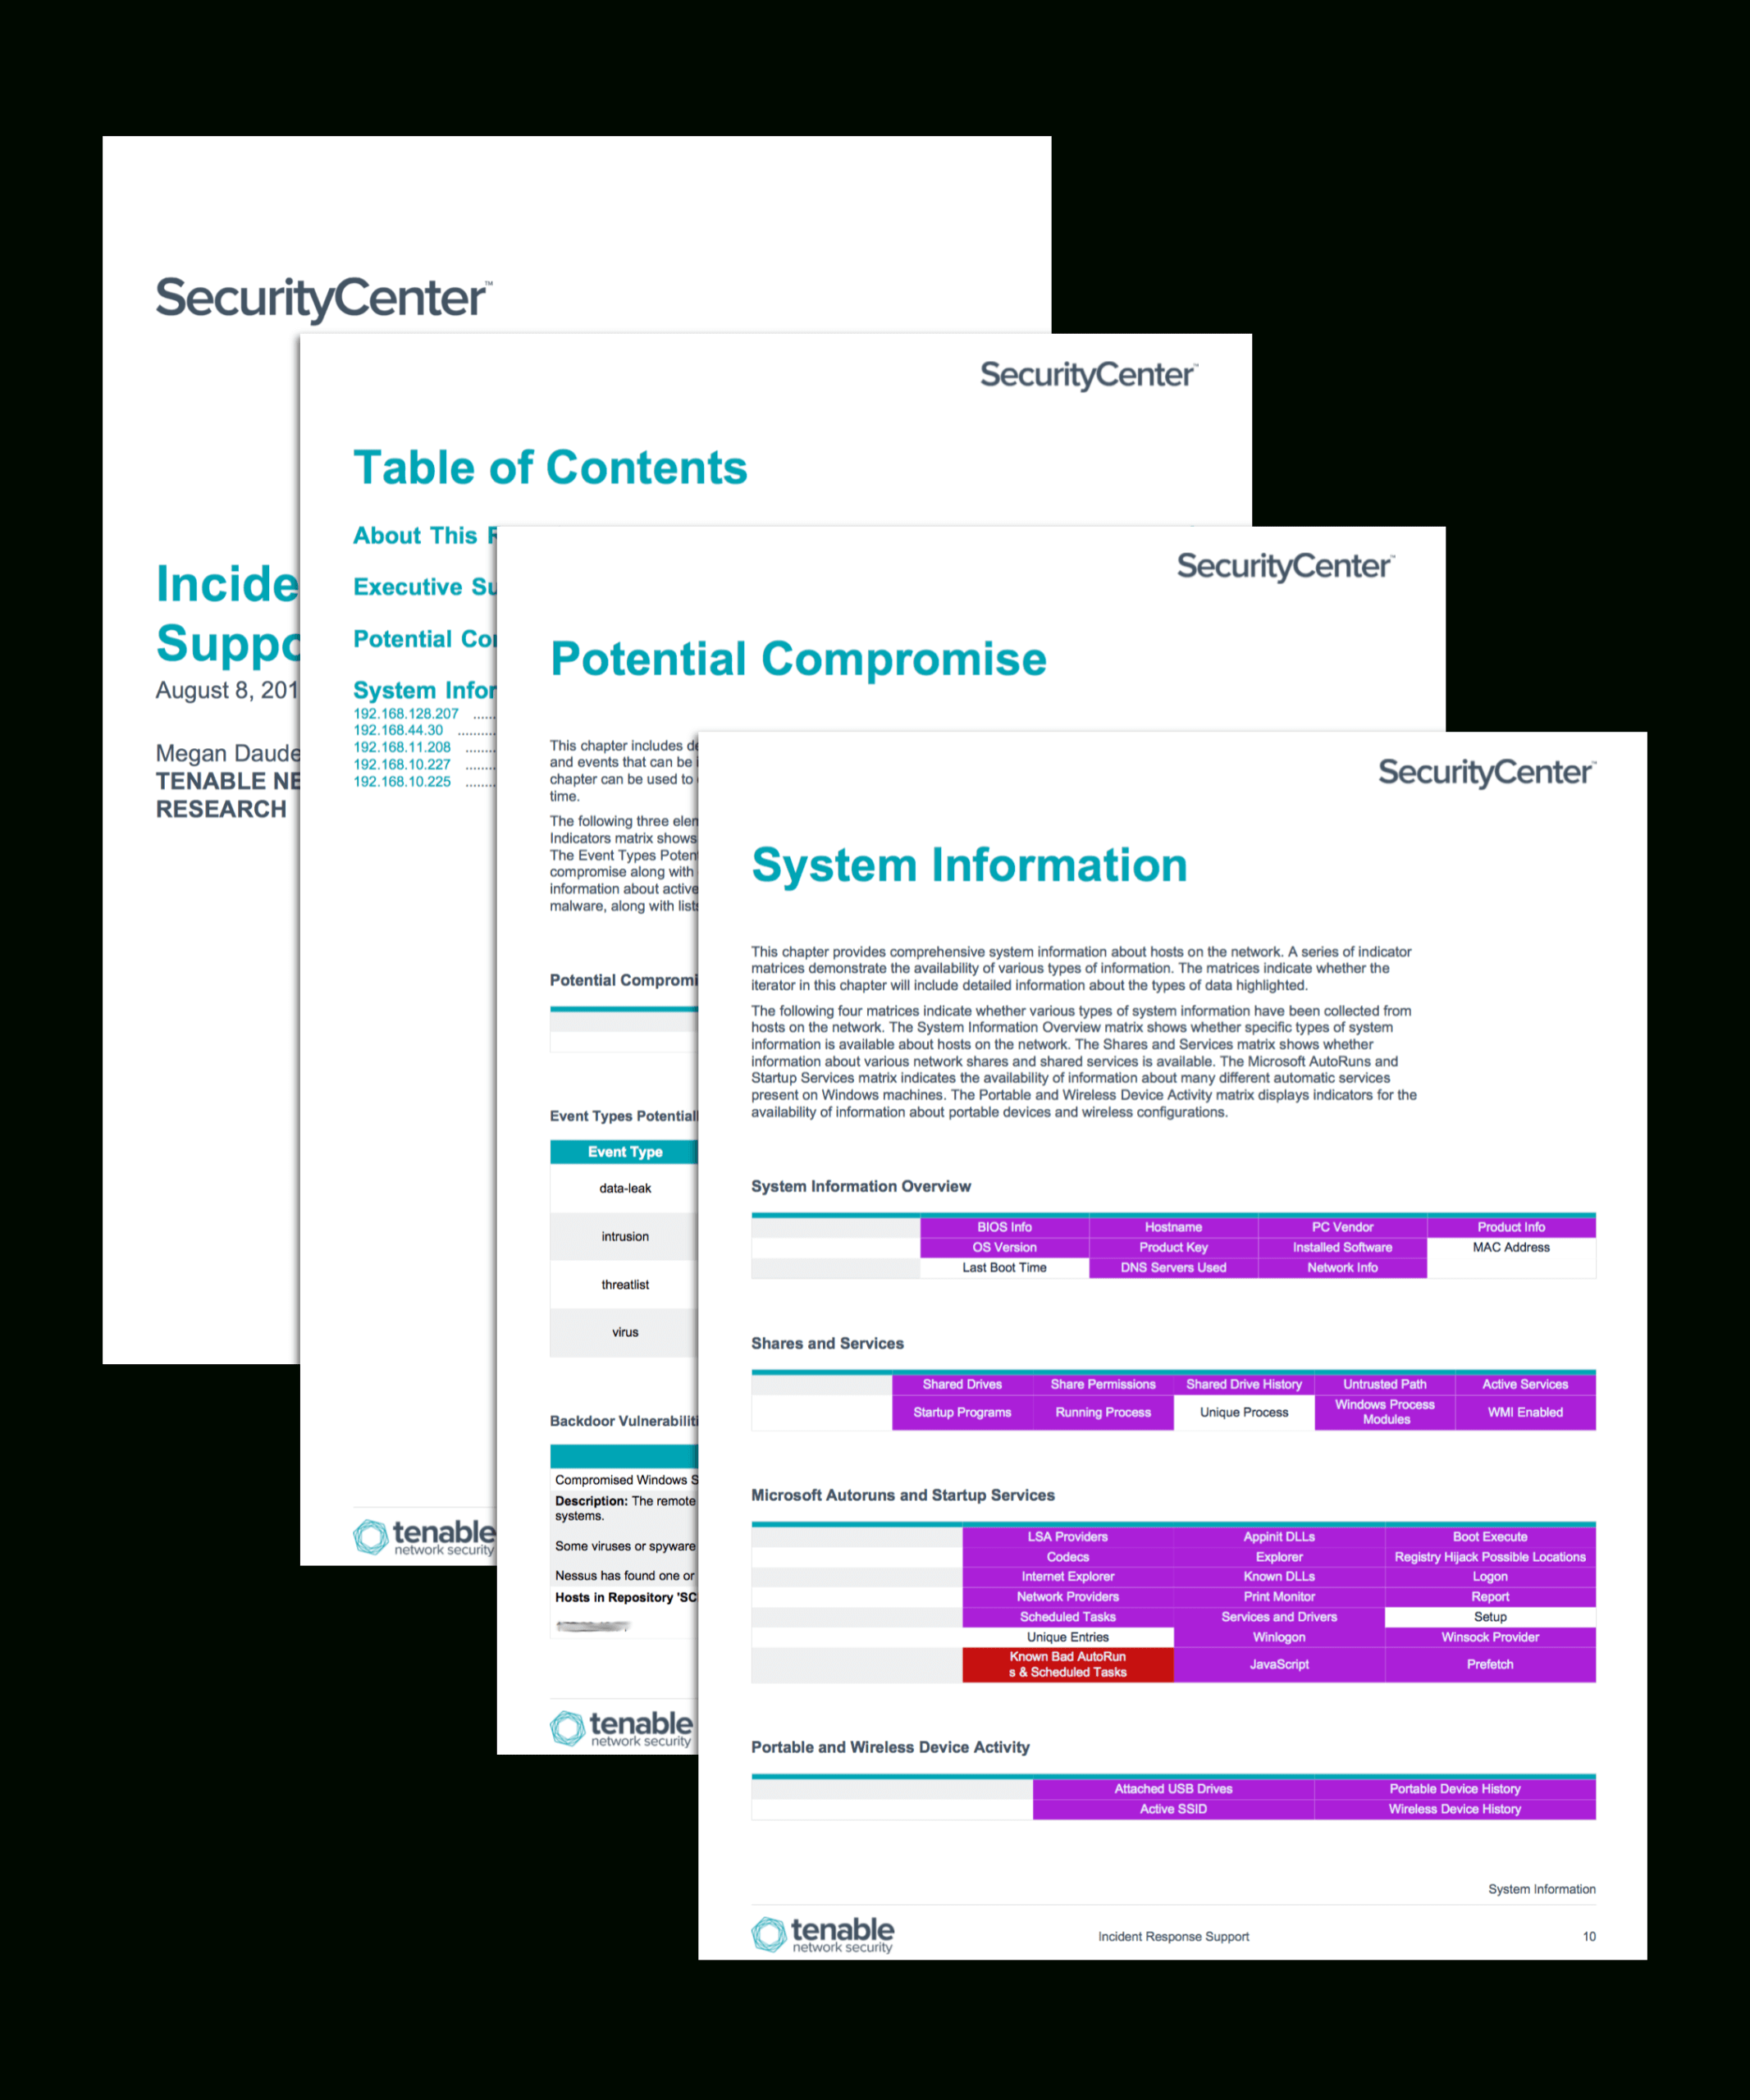 Incident Response Support - Sc Report Template | Tenable® Throughout Technical Support Report Template